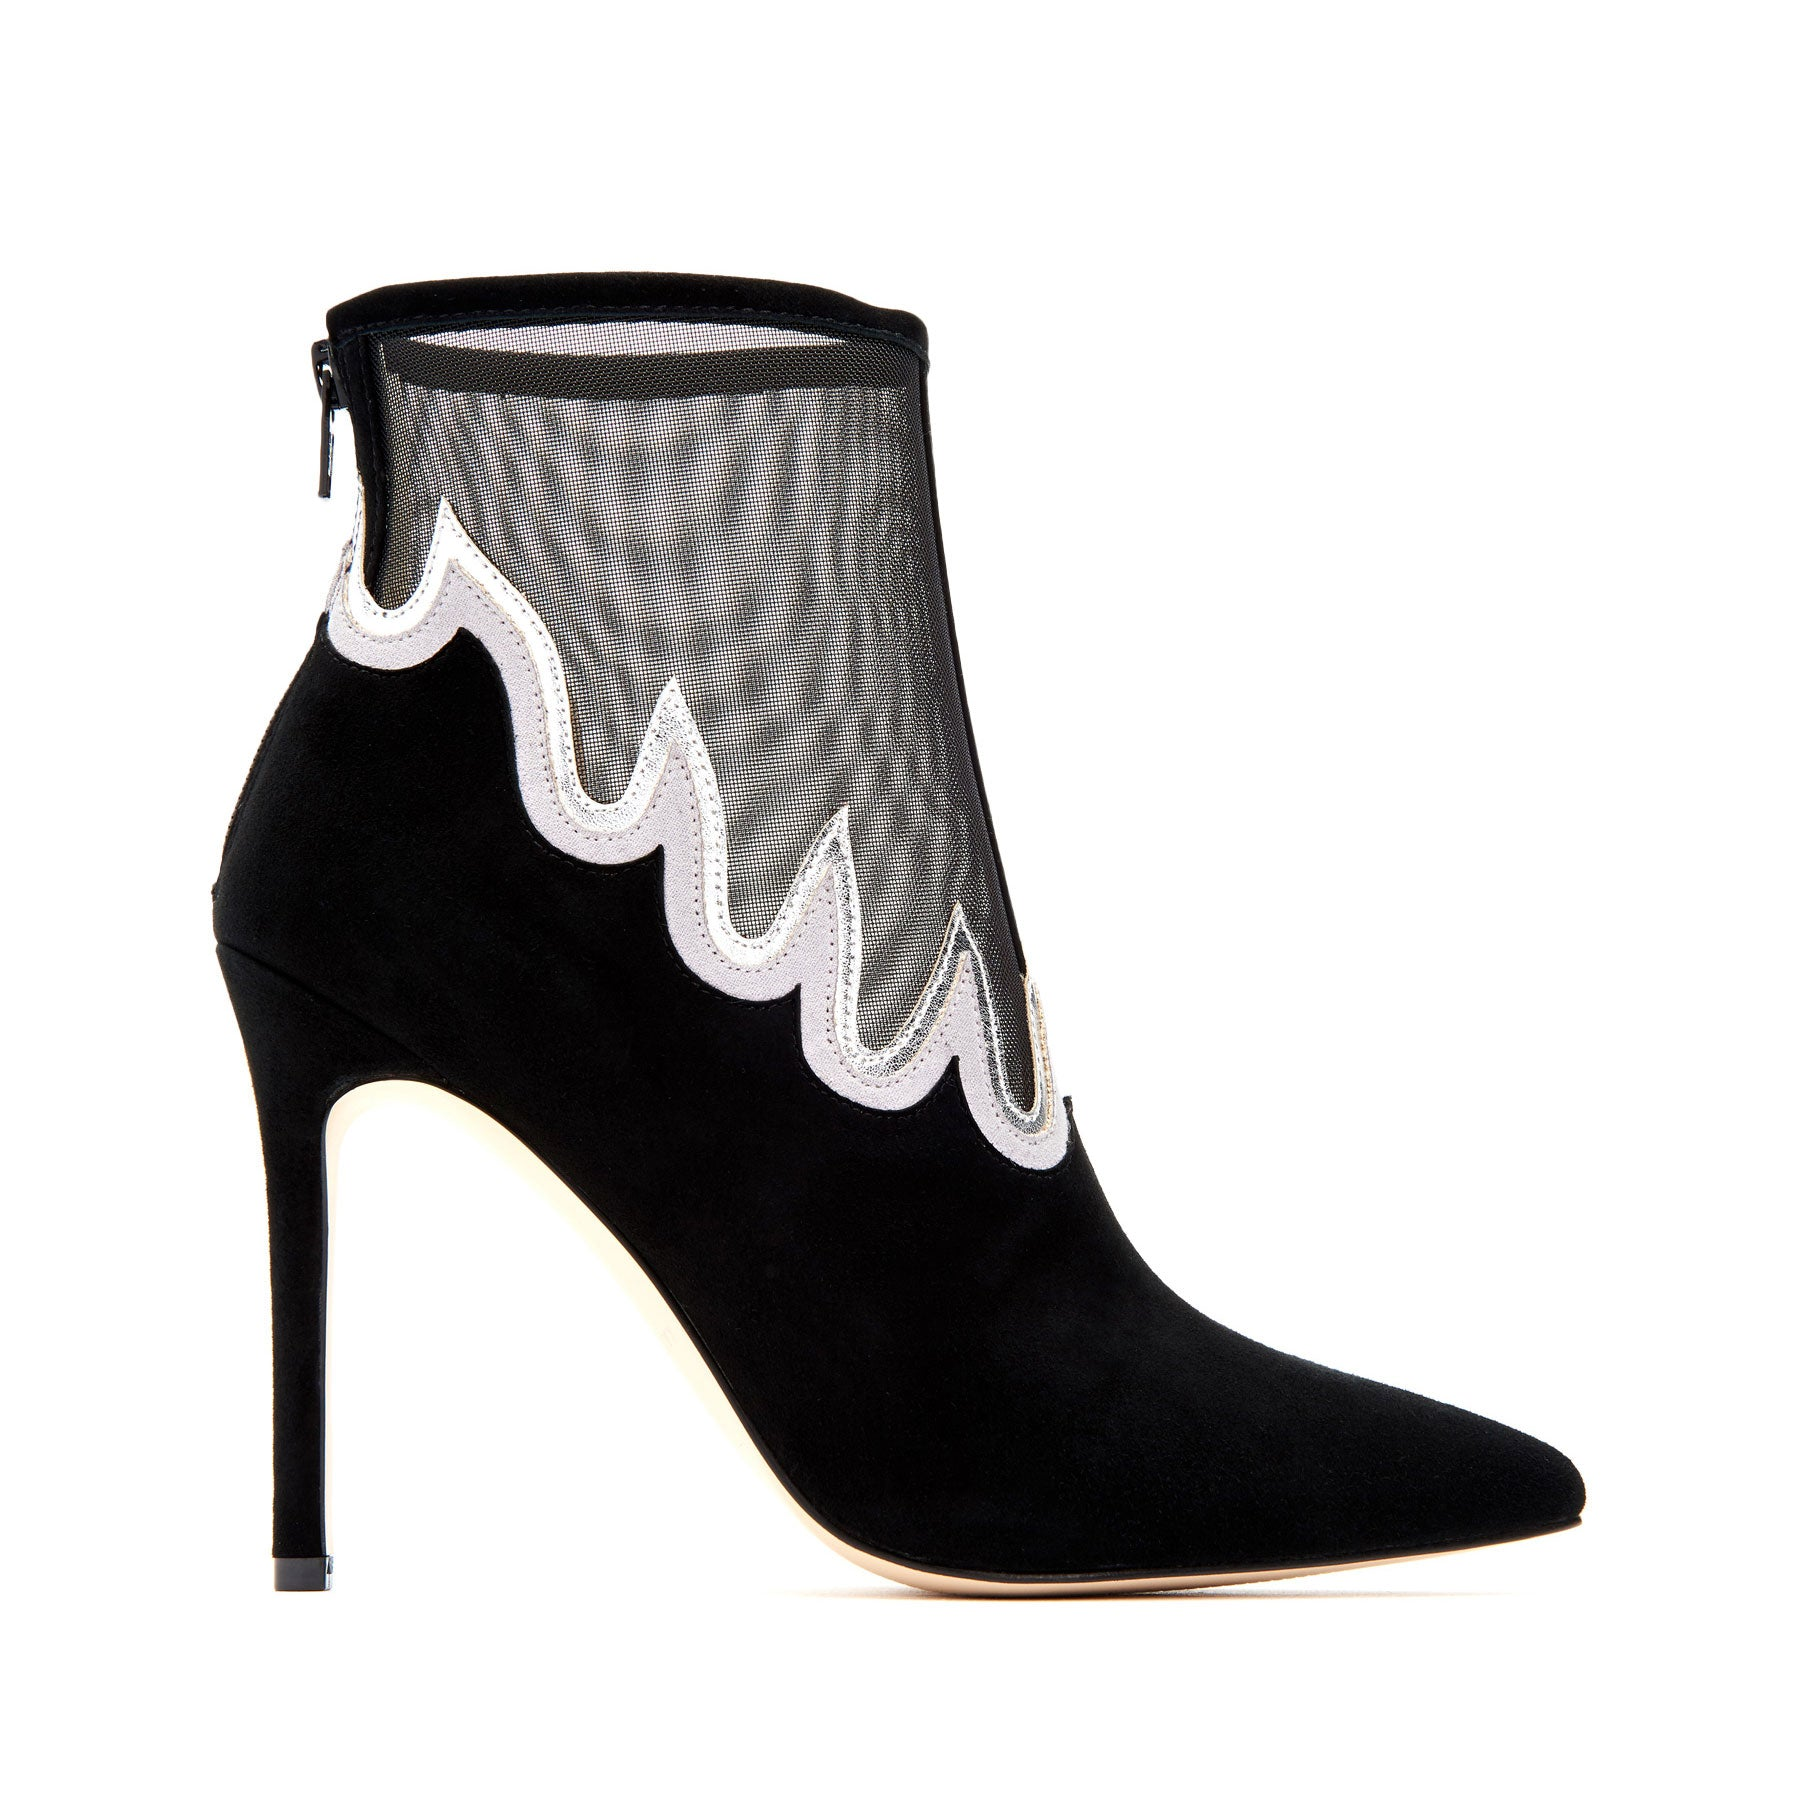 katy perry heeled boot in black/silver size 7   the libre